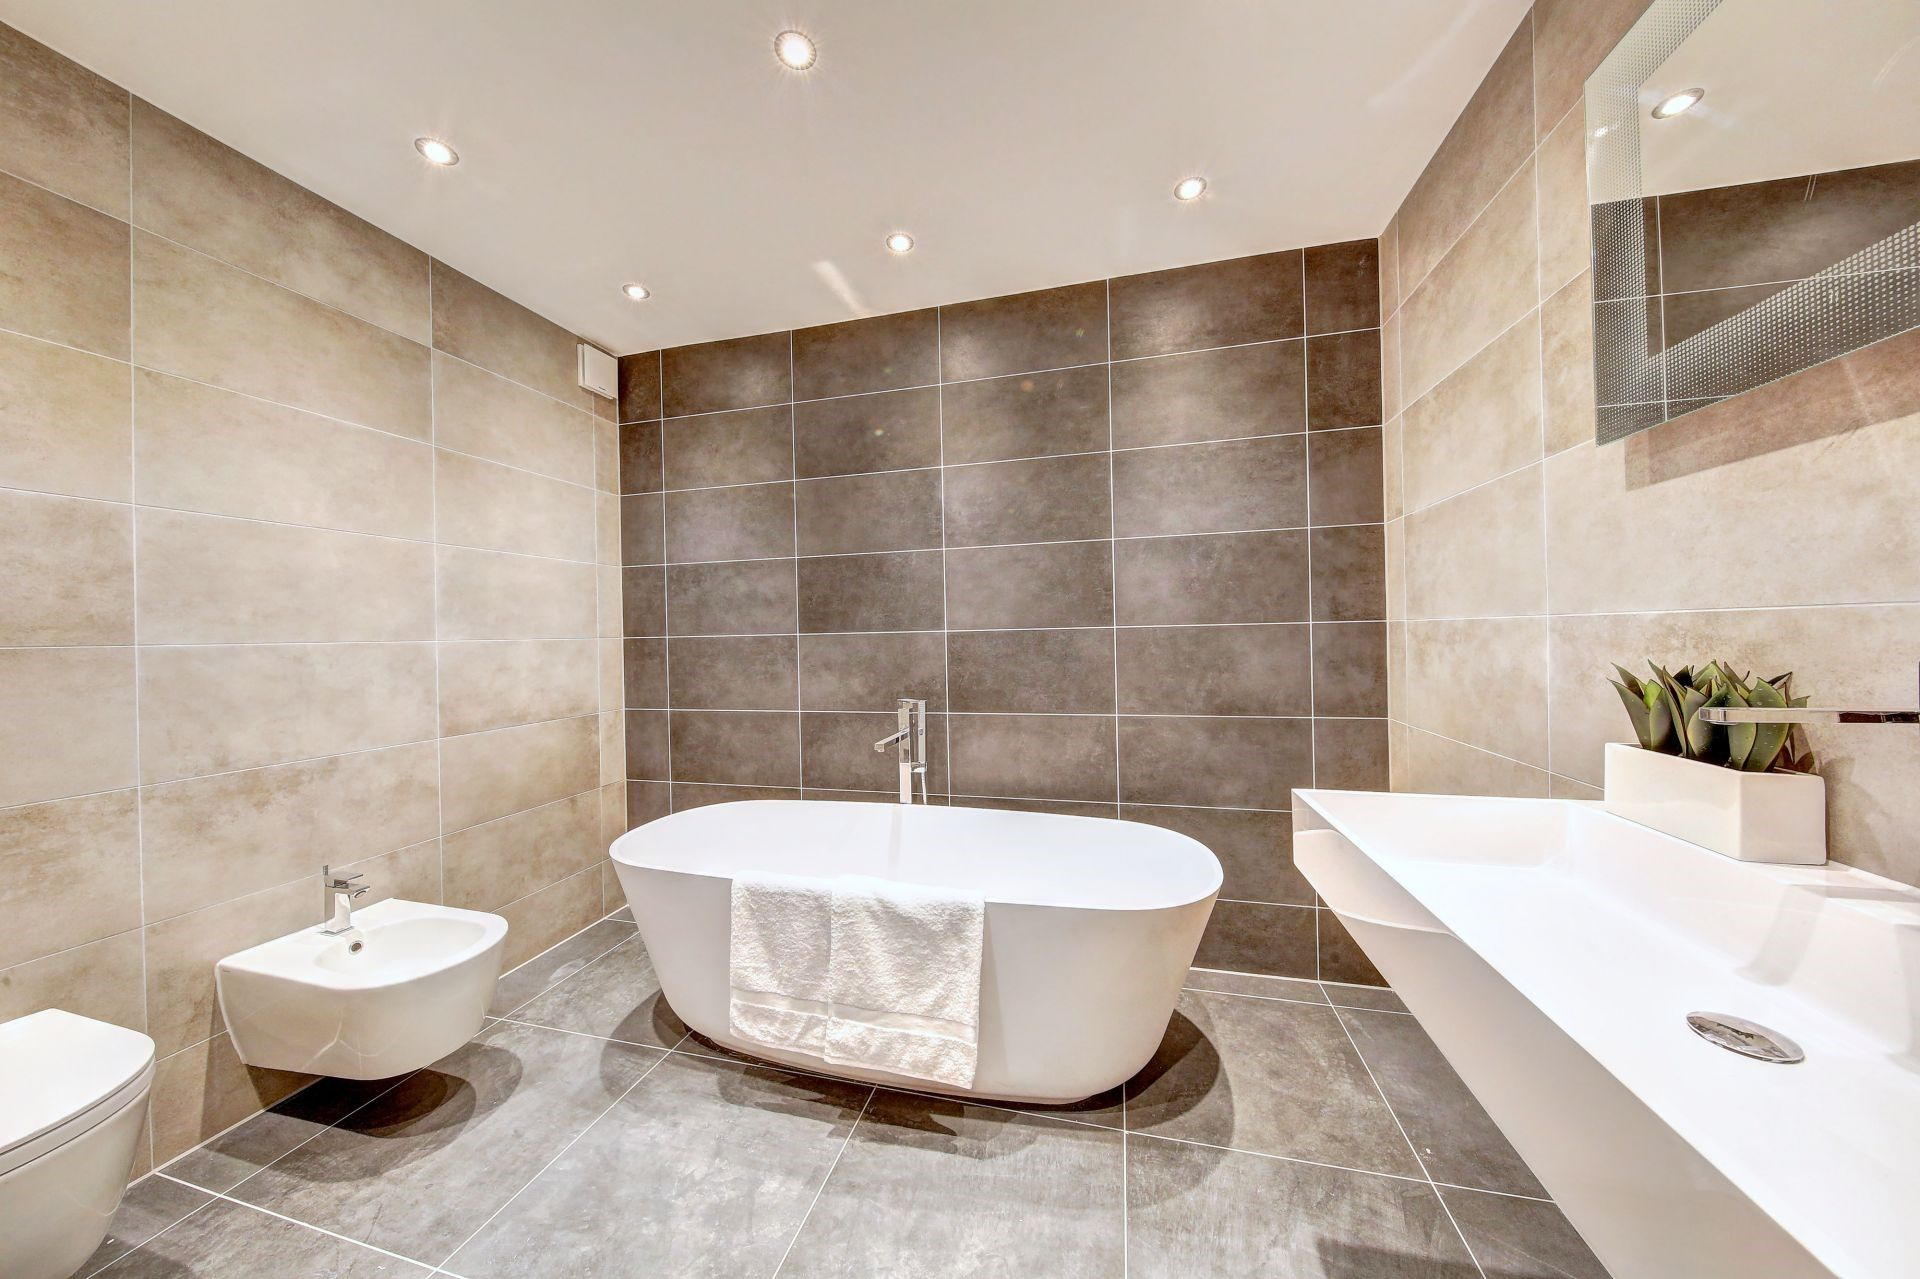 Top 10 bathrooms for modern mums